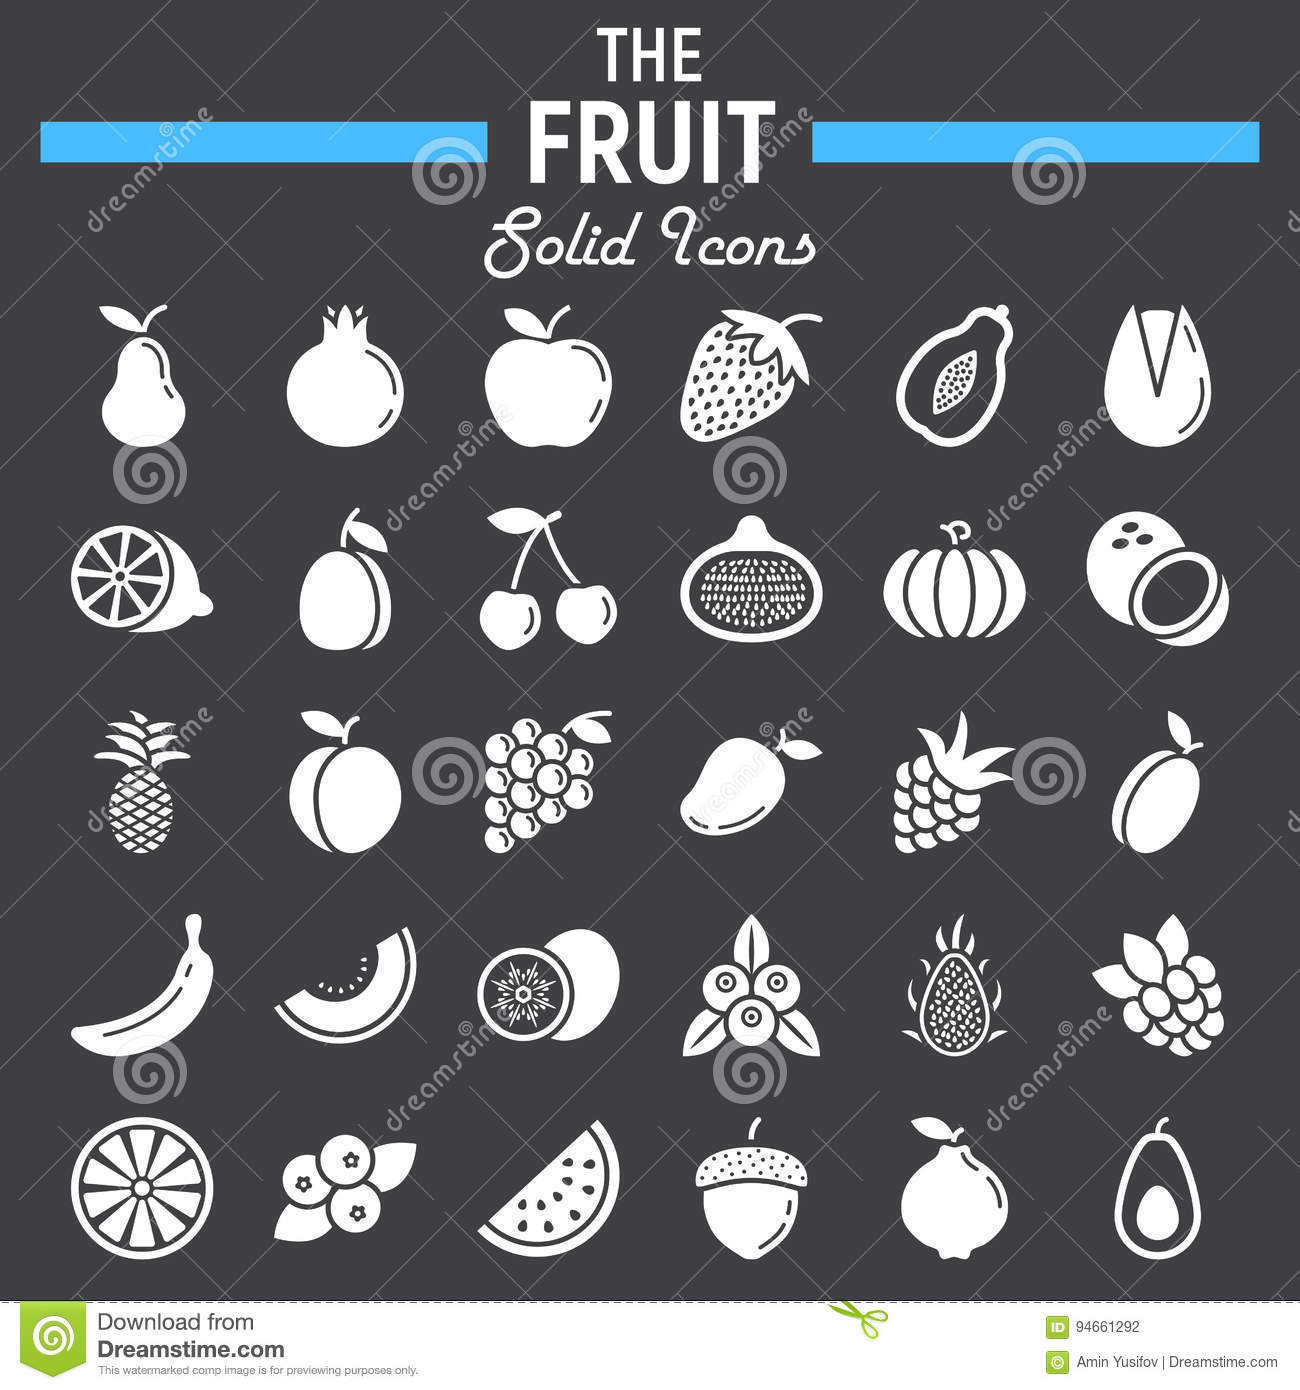 Fruit solid icon set, food symbols collection